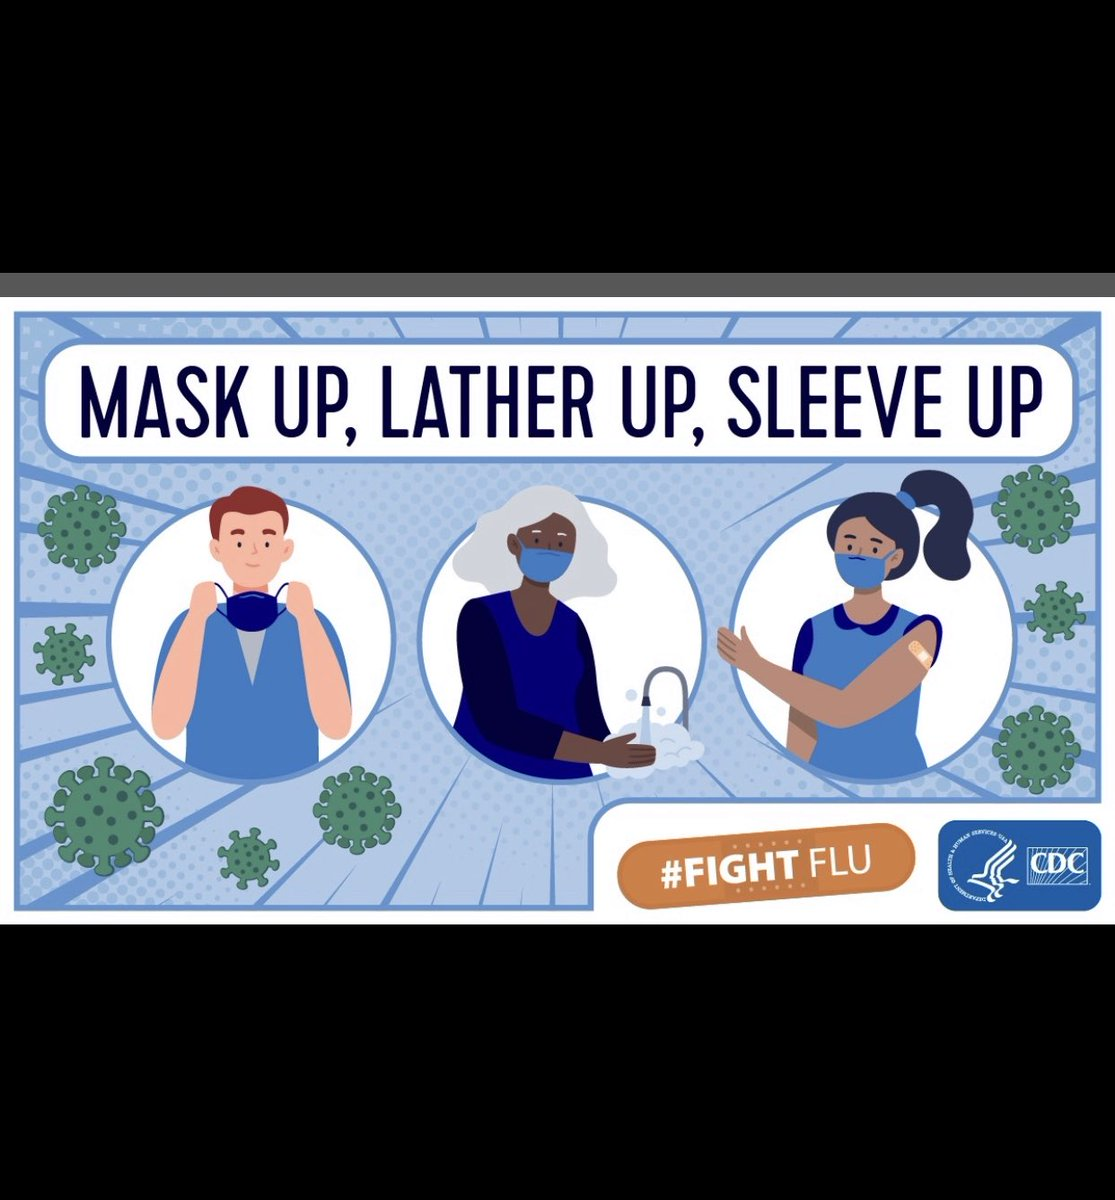 Getting a #fluvaccine is more important than ever #MaskUp #LatherUp hands w/ soap & water Roll your #SleeveUp for flu shot The more people vaccinated, the more people protected!  #HWH_FLU  #IDPH #CDPH #CDC #CenterForAsianHealthEquity #UChicago